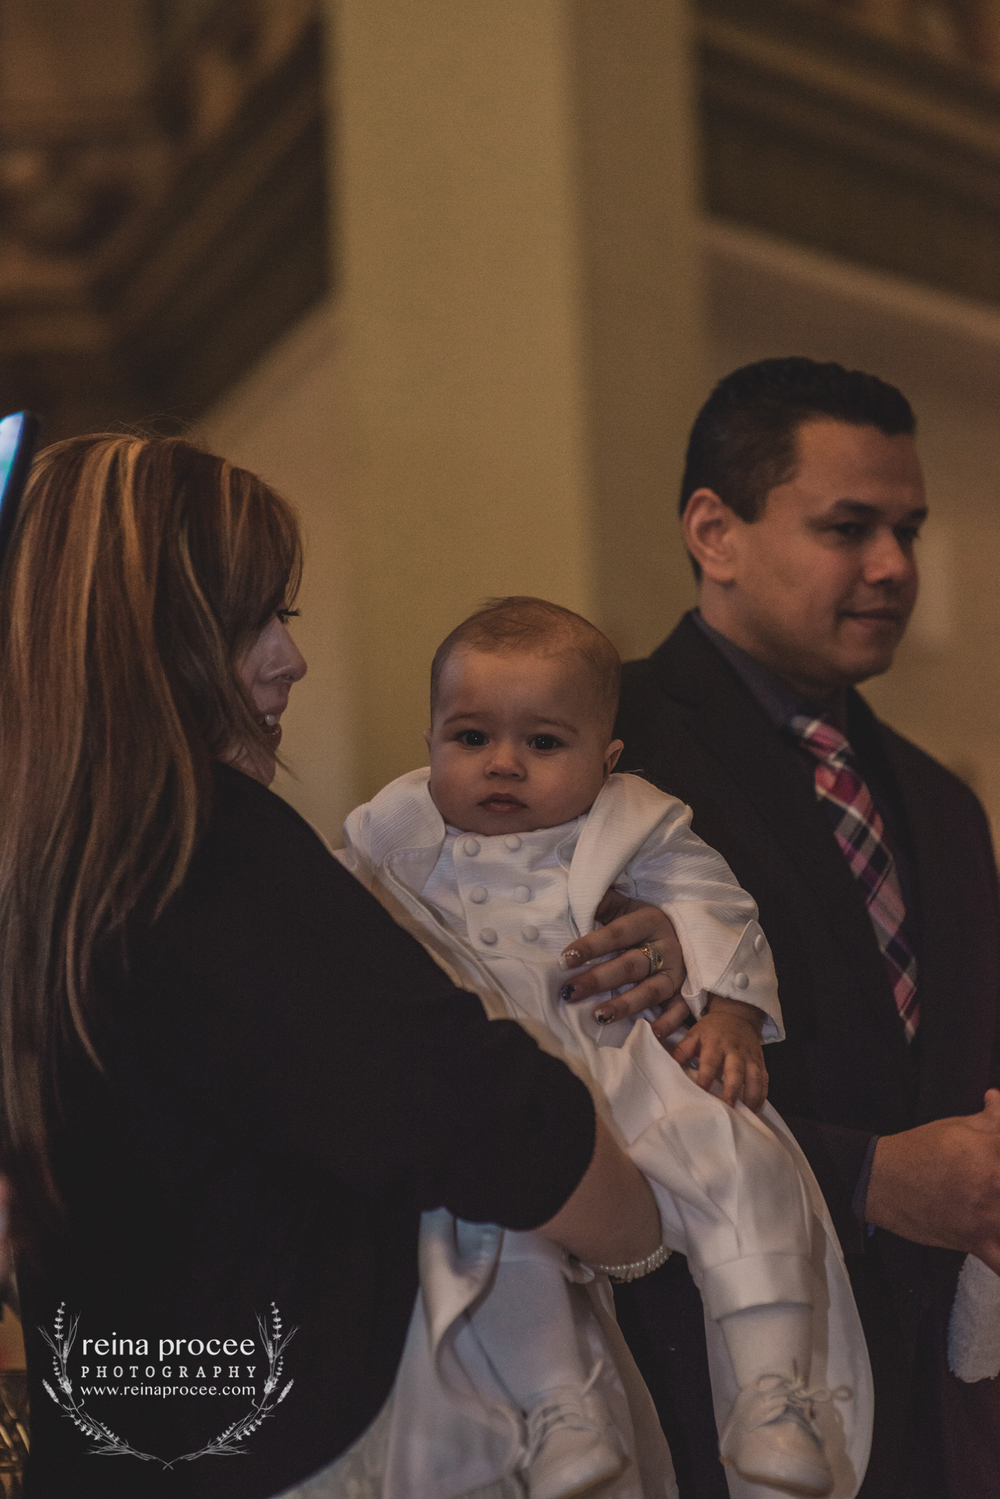 045-baptism-photographer-montreal-family-best-photos-portraits.jpg